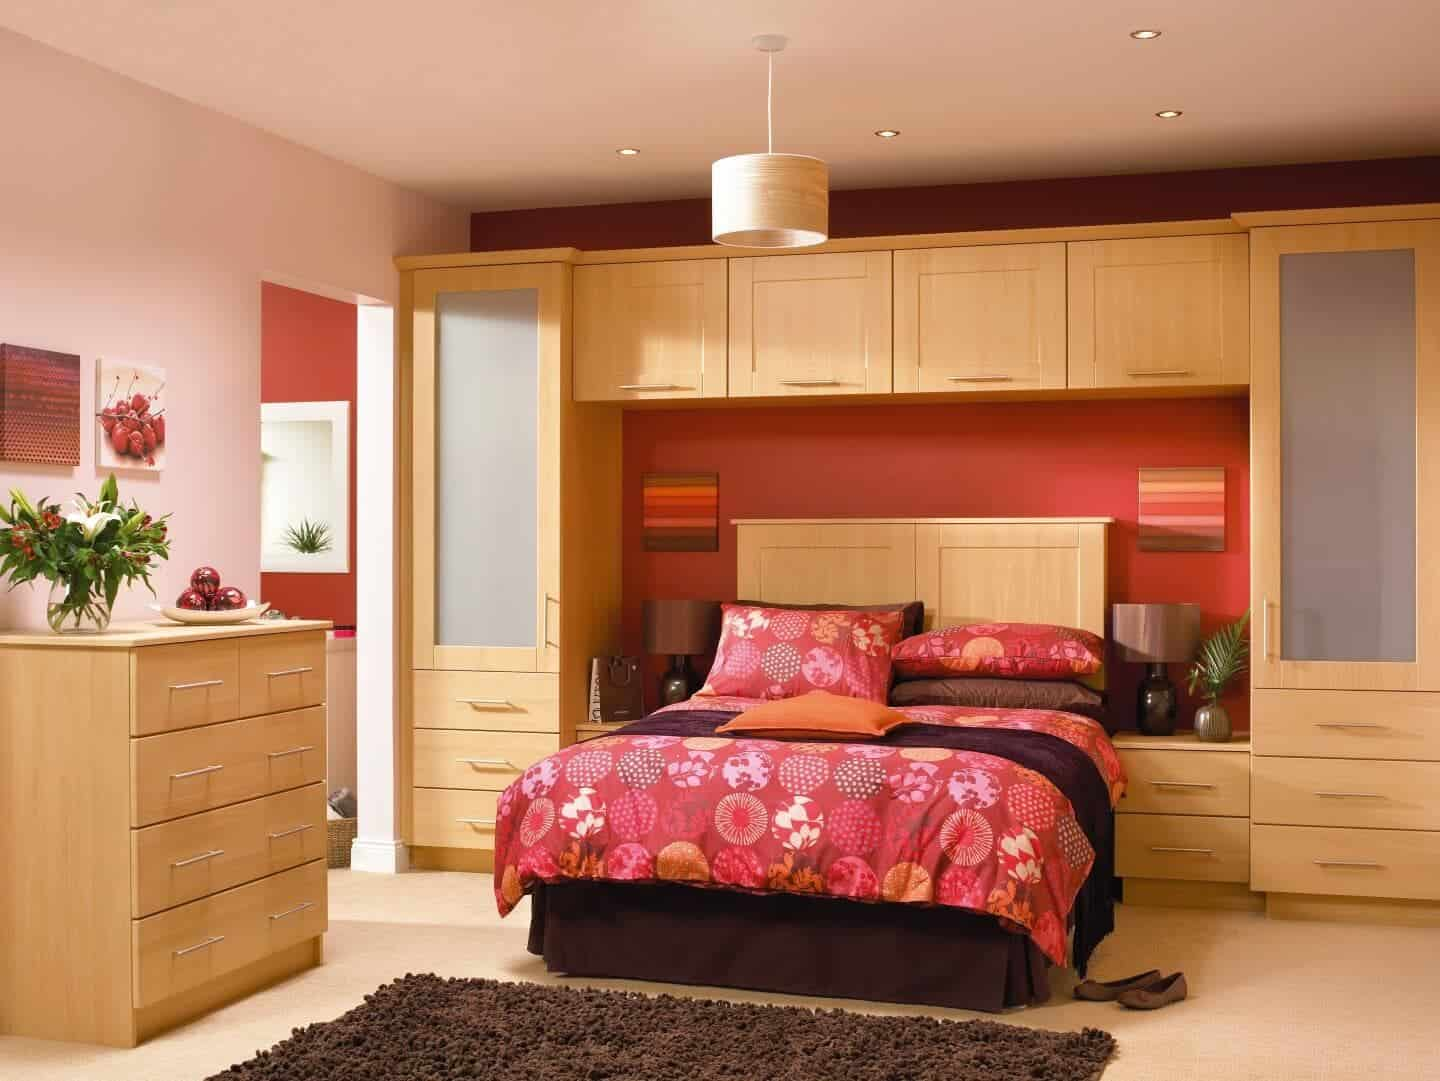 Newly fitted bedroom